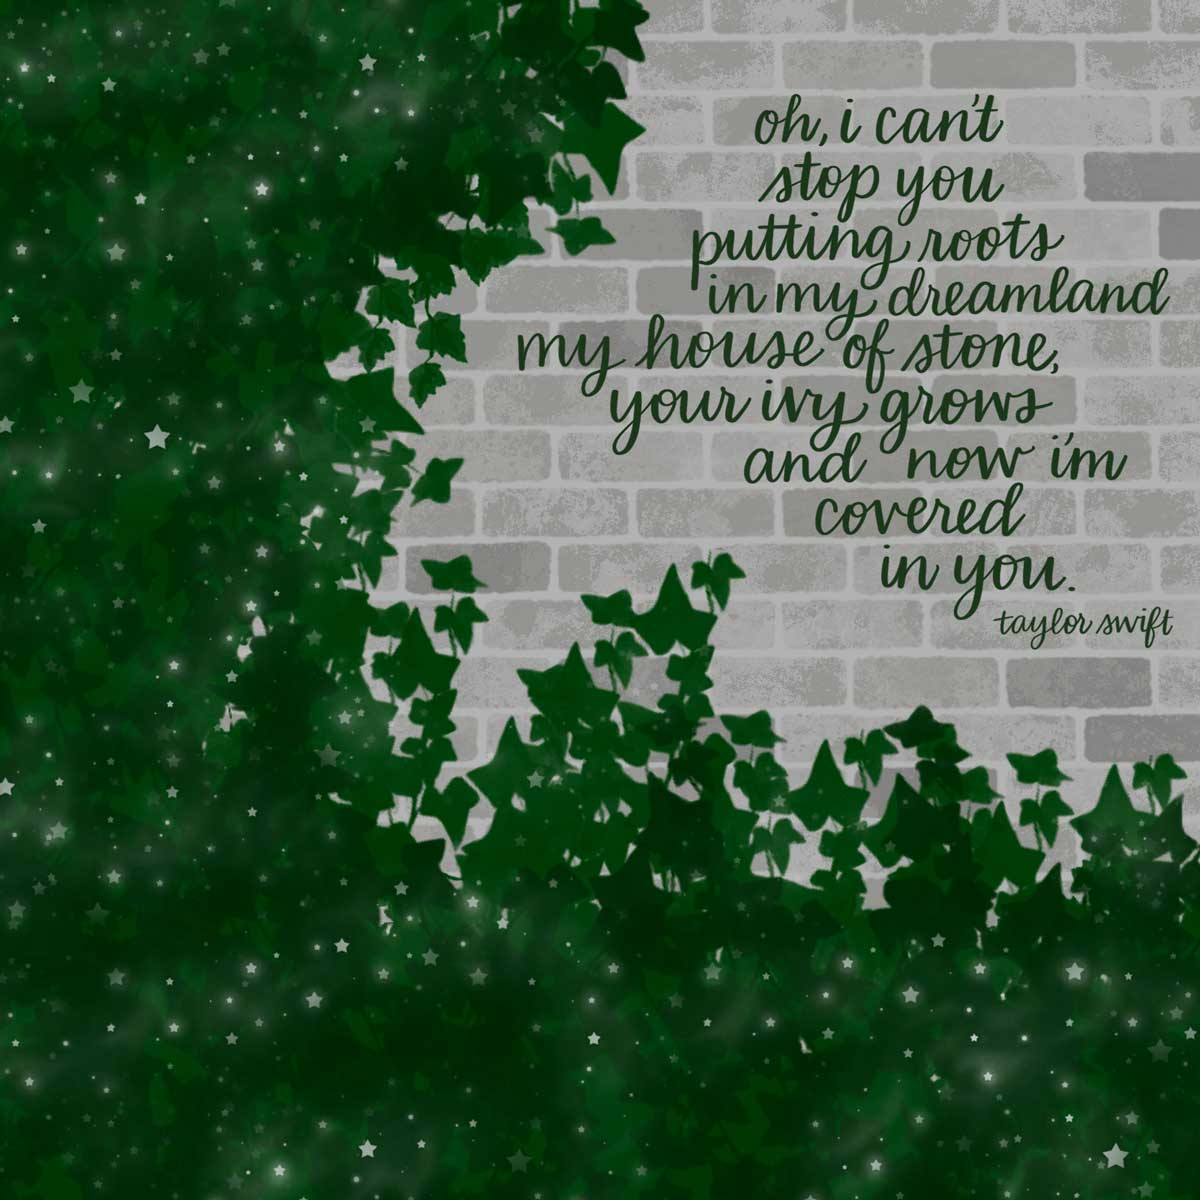 ivy by taylor swift lyrics on ivy covered wall.